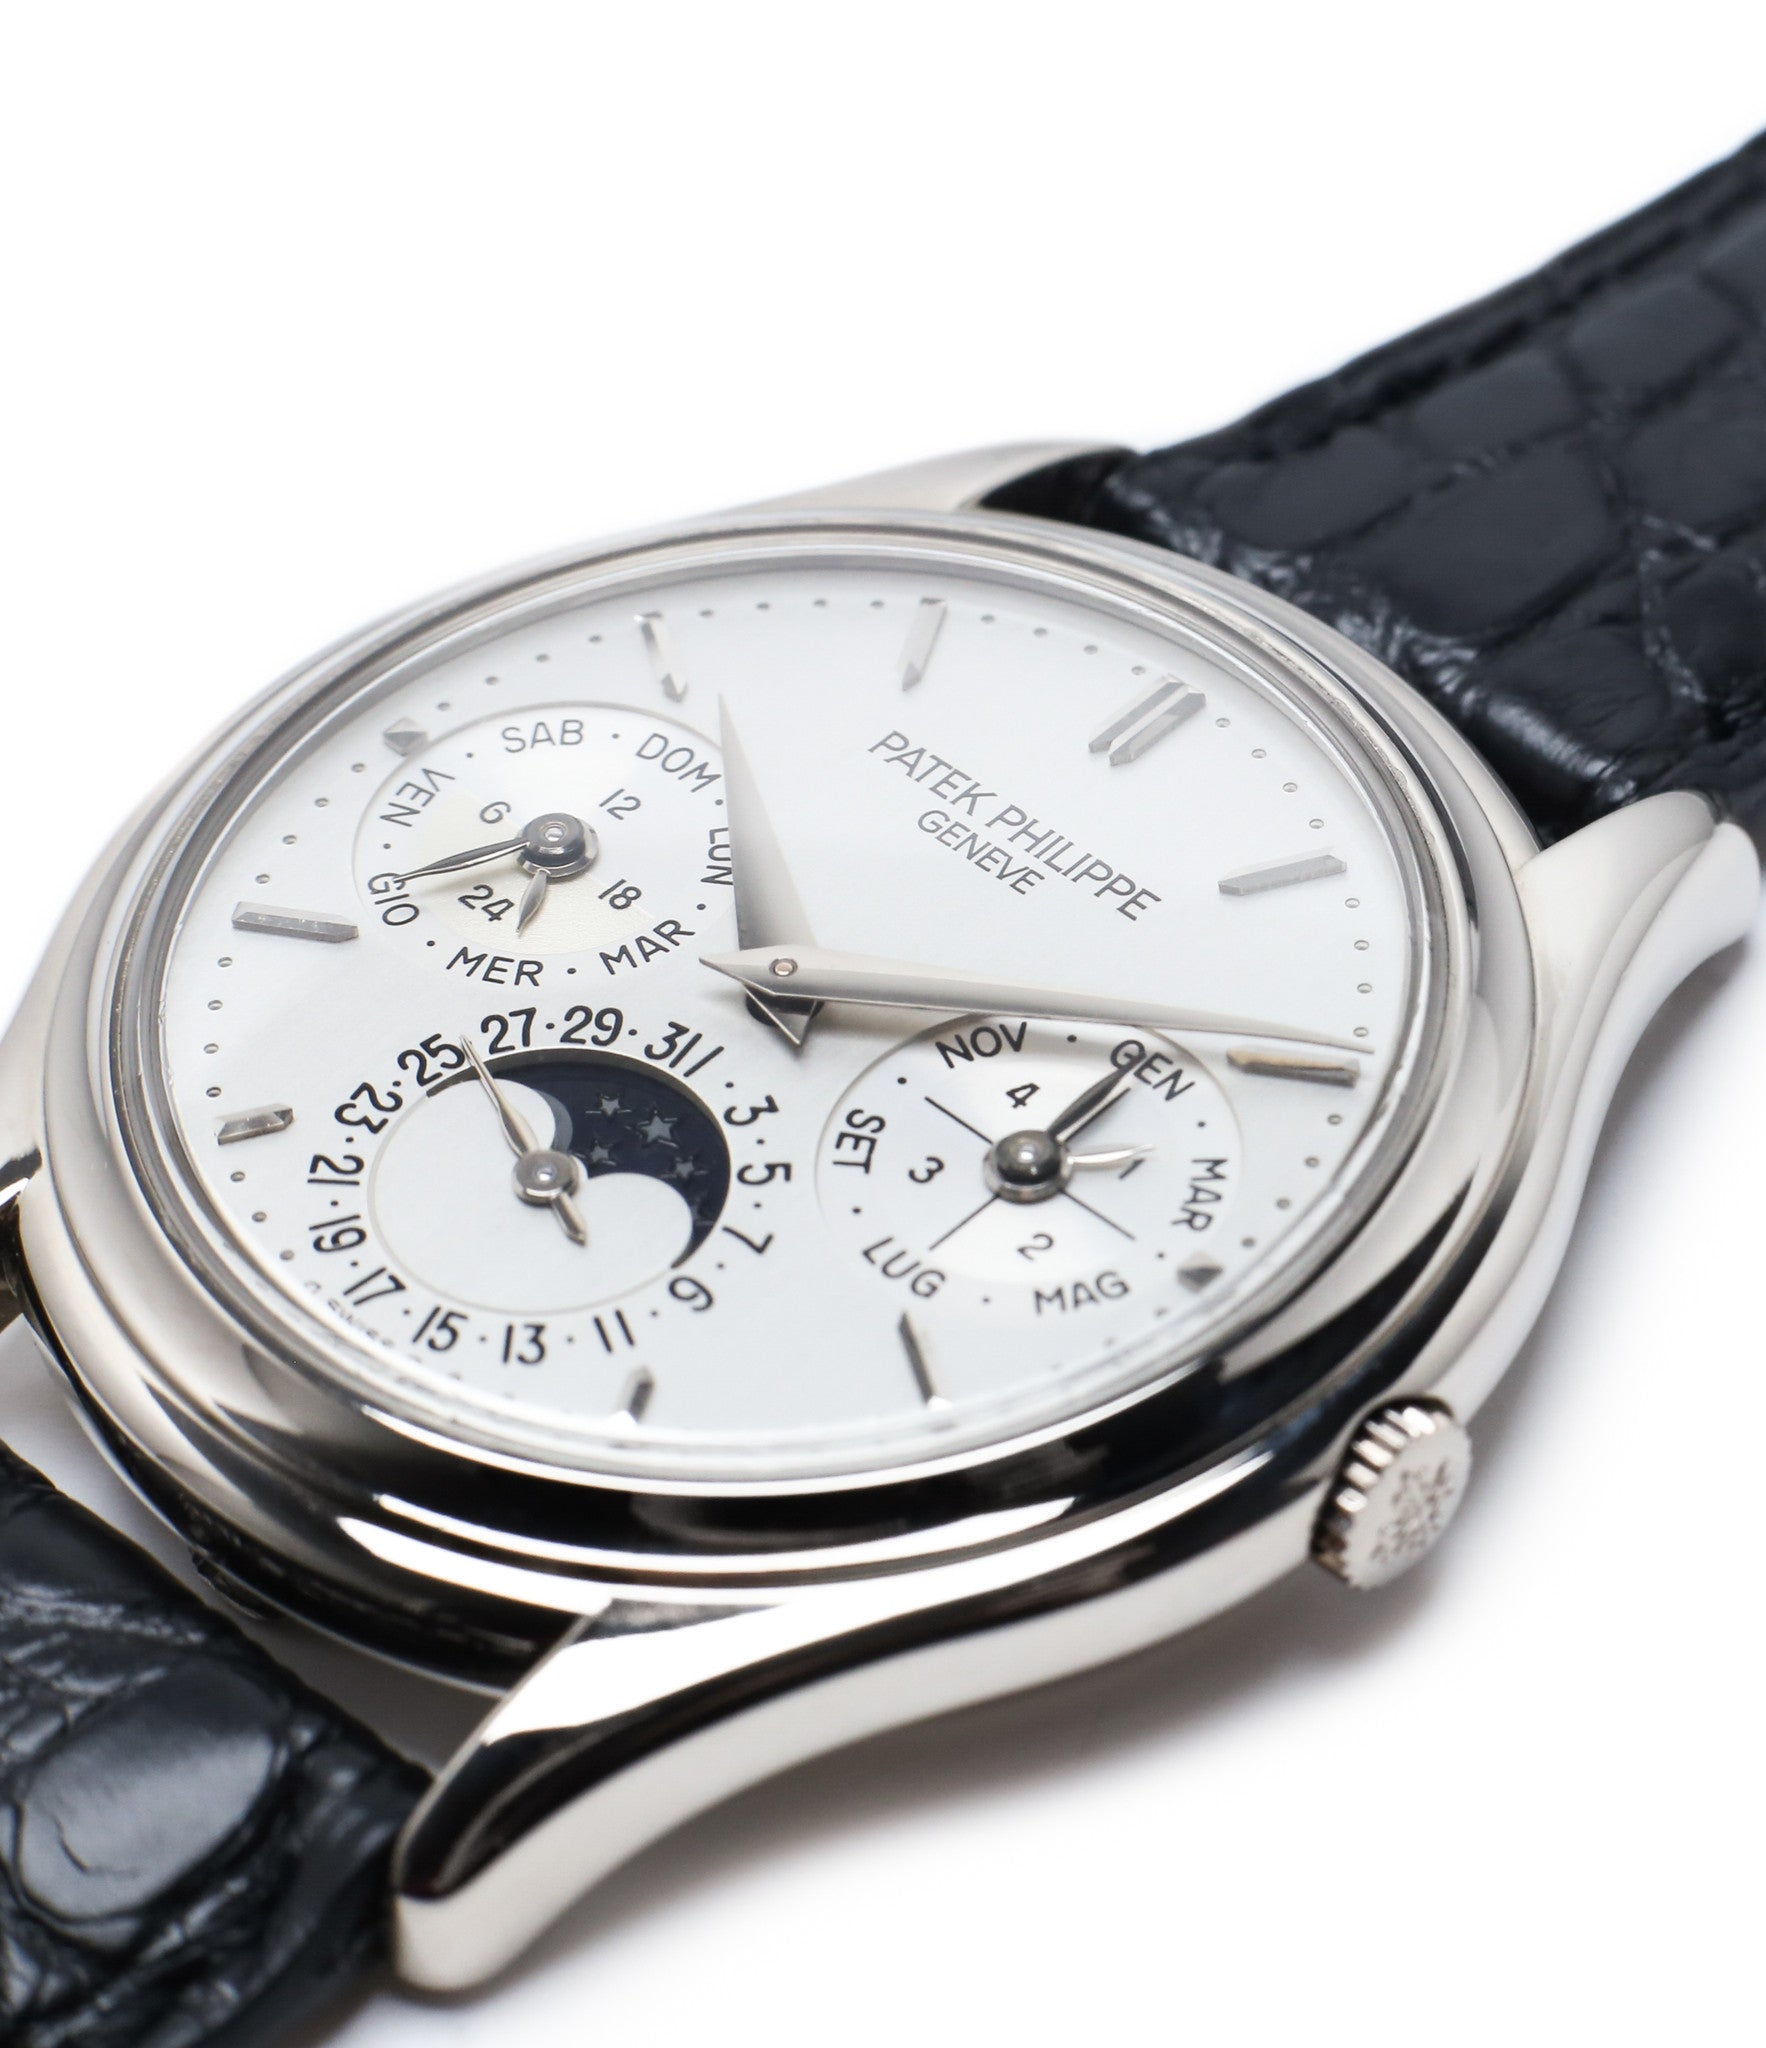 slim case buy rare Patek Philippe Perpetual Calendar 3940G moonphase white gold watch full set at A Collected Man